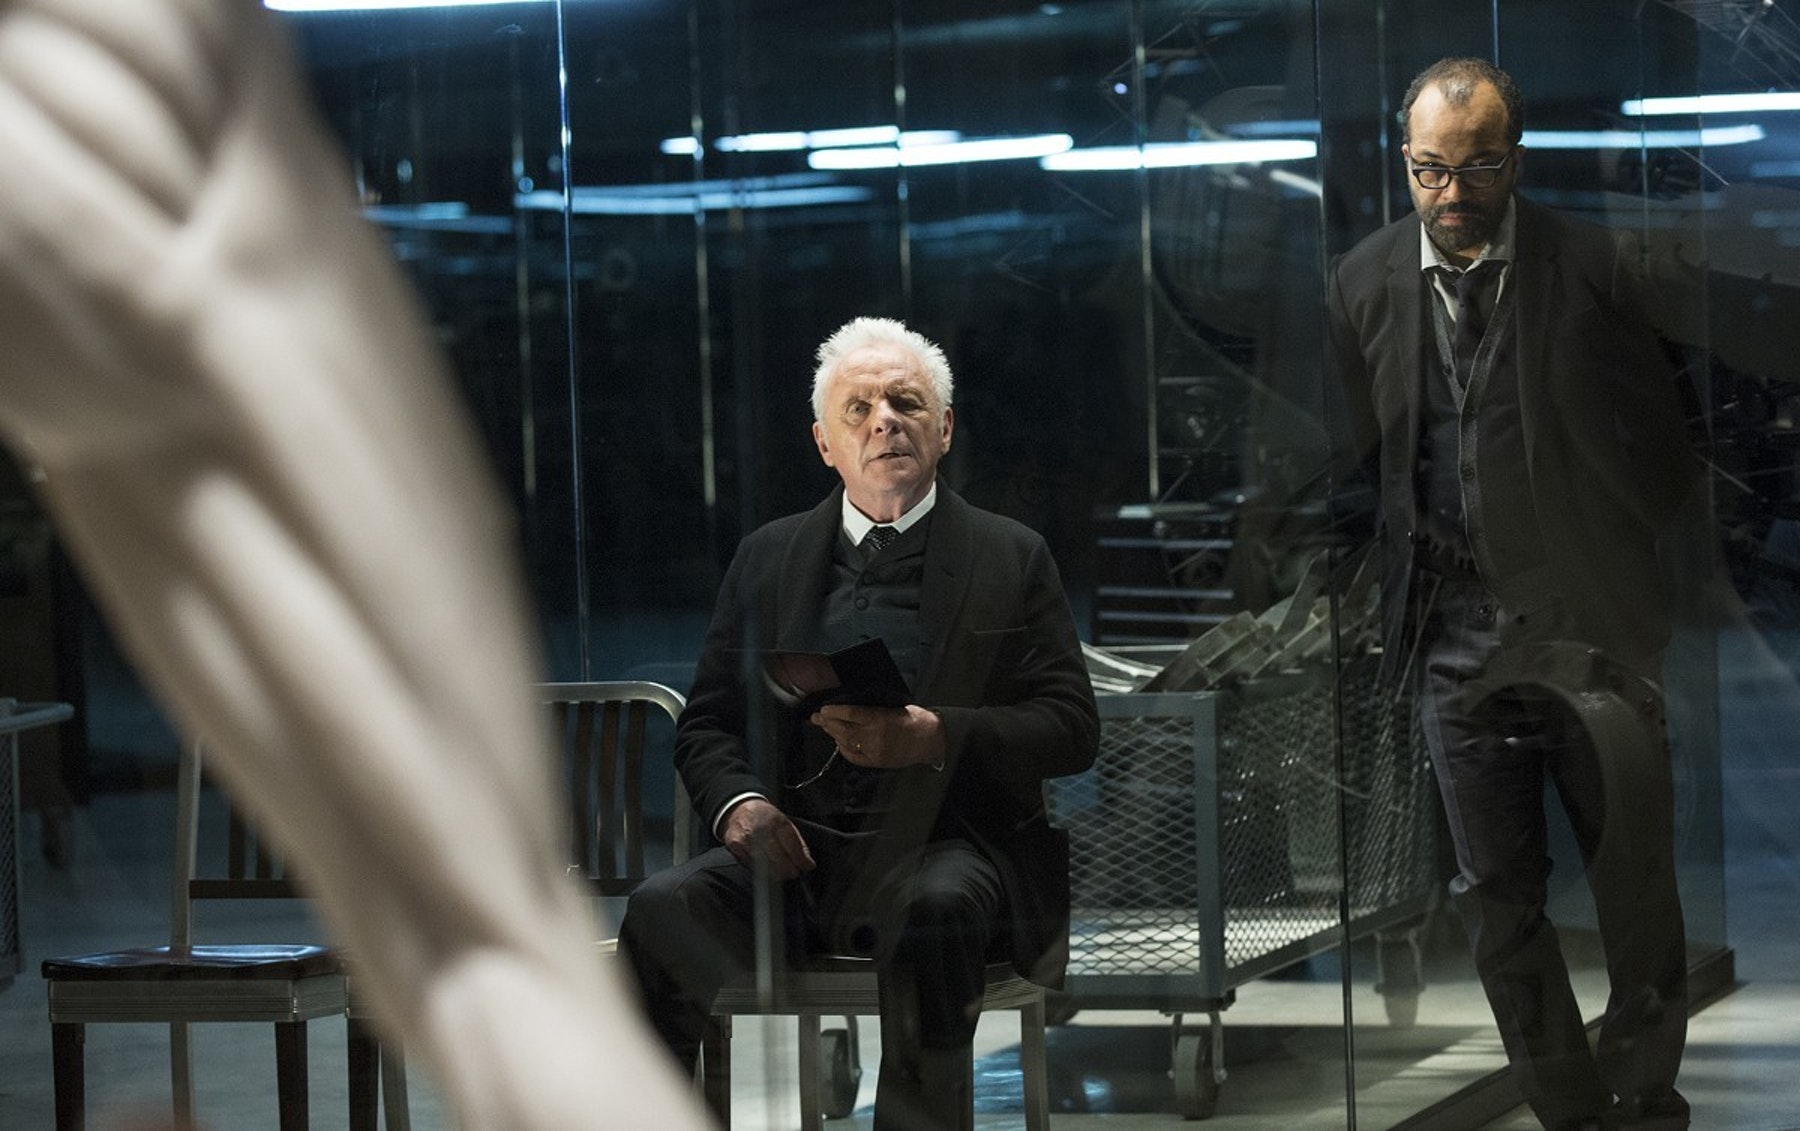 Anthony Hopkins as Dr. Robert Ford andJeffrey Wright as Bernard Lowe staring at...something.